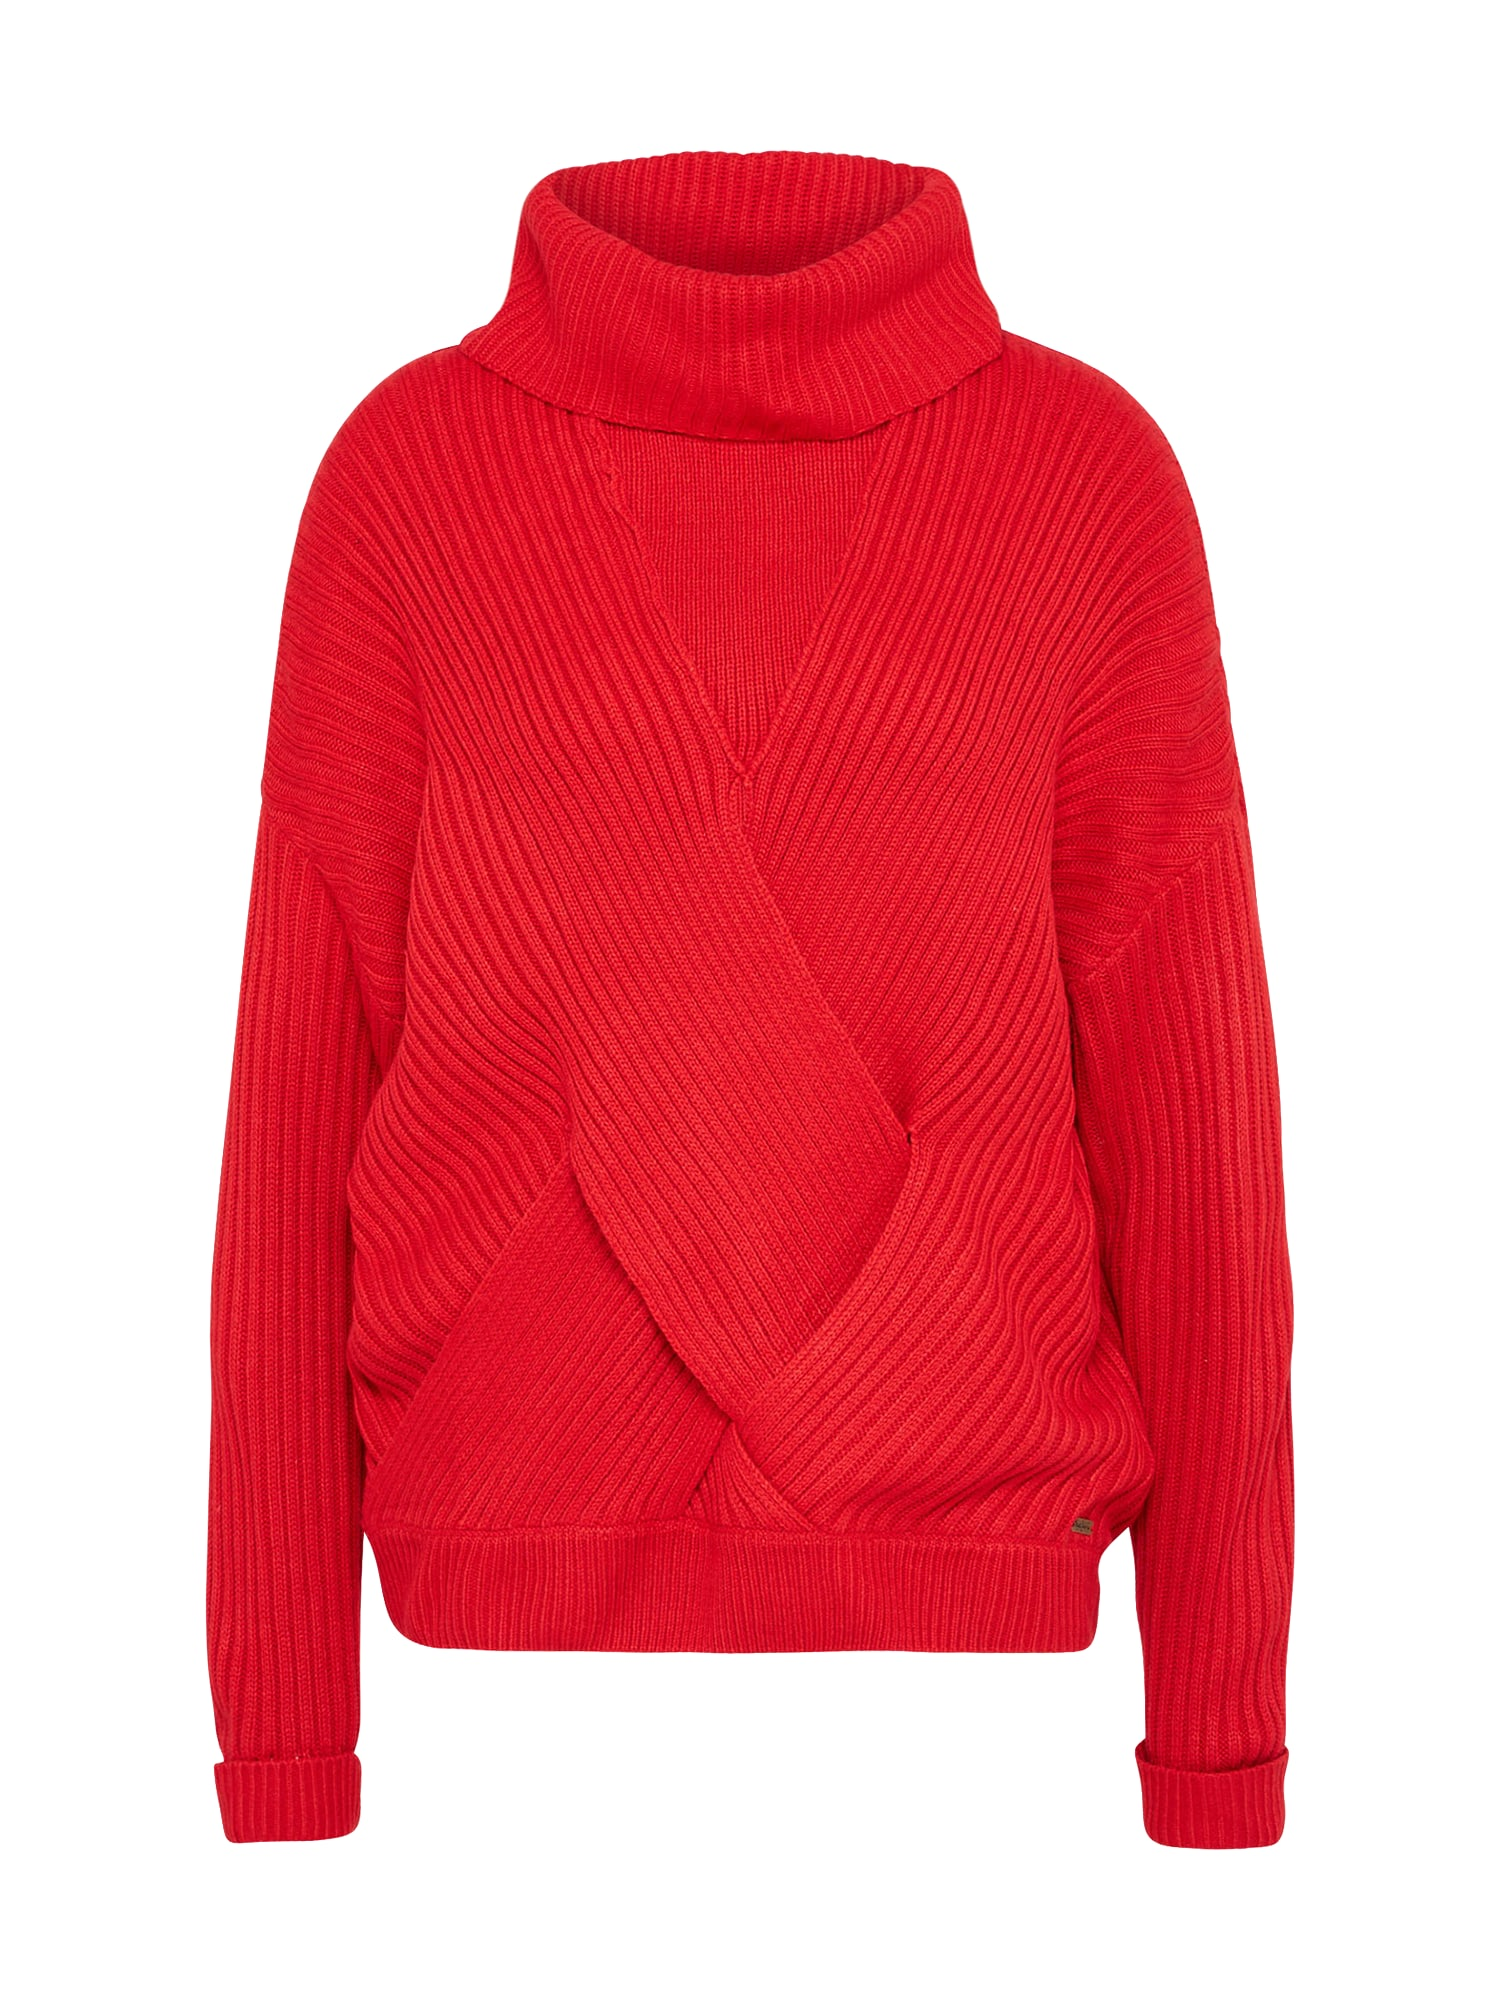 Pepe Jeans Dames Trui LOUISE rood